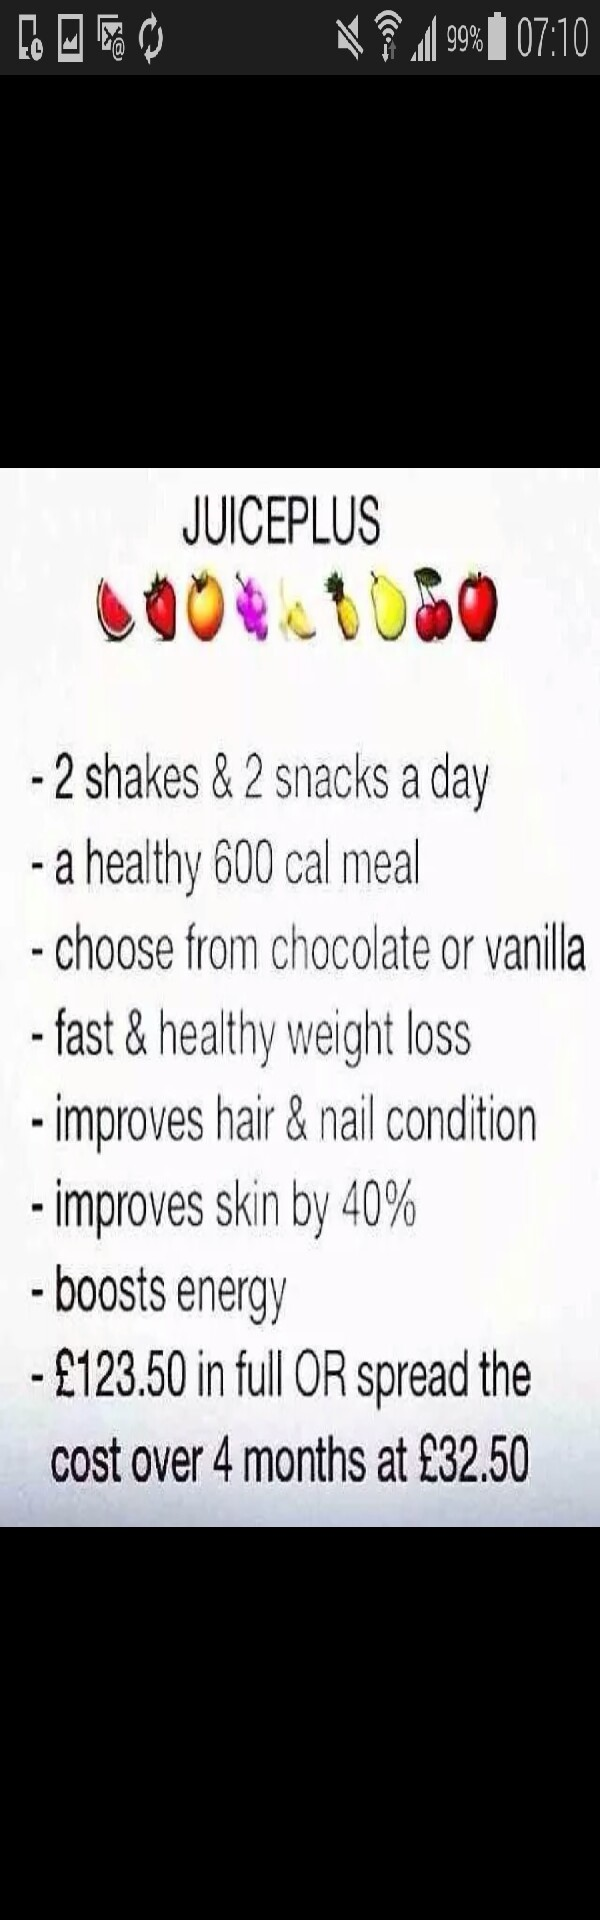 Add my facebook: 'Amy HealthyLiving'🌟 for real client journeys!